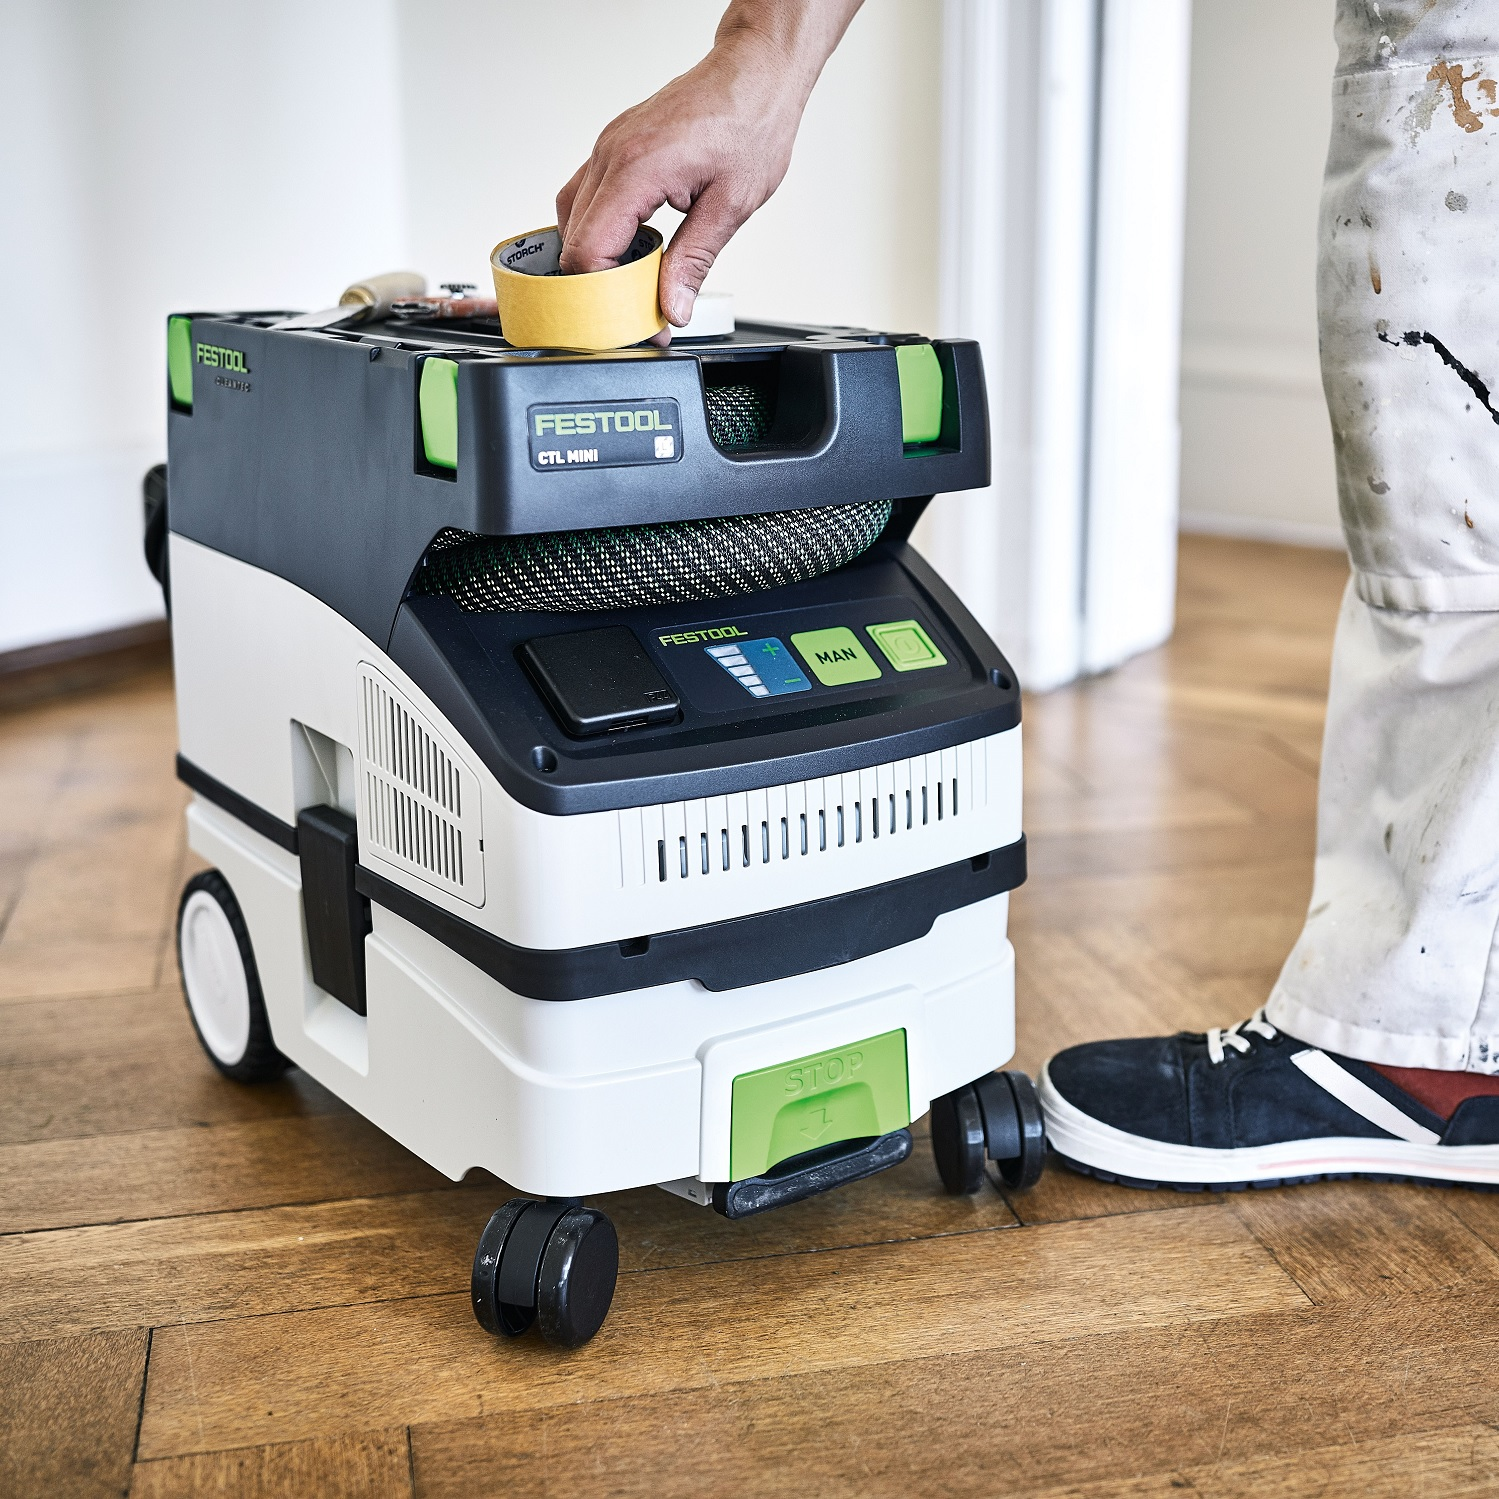 Festool dust extractors new design with bluetooth remote controls